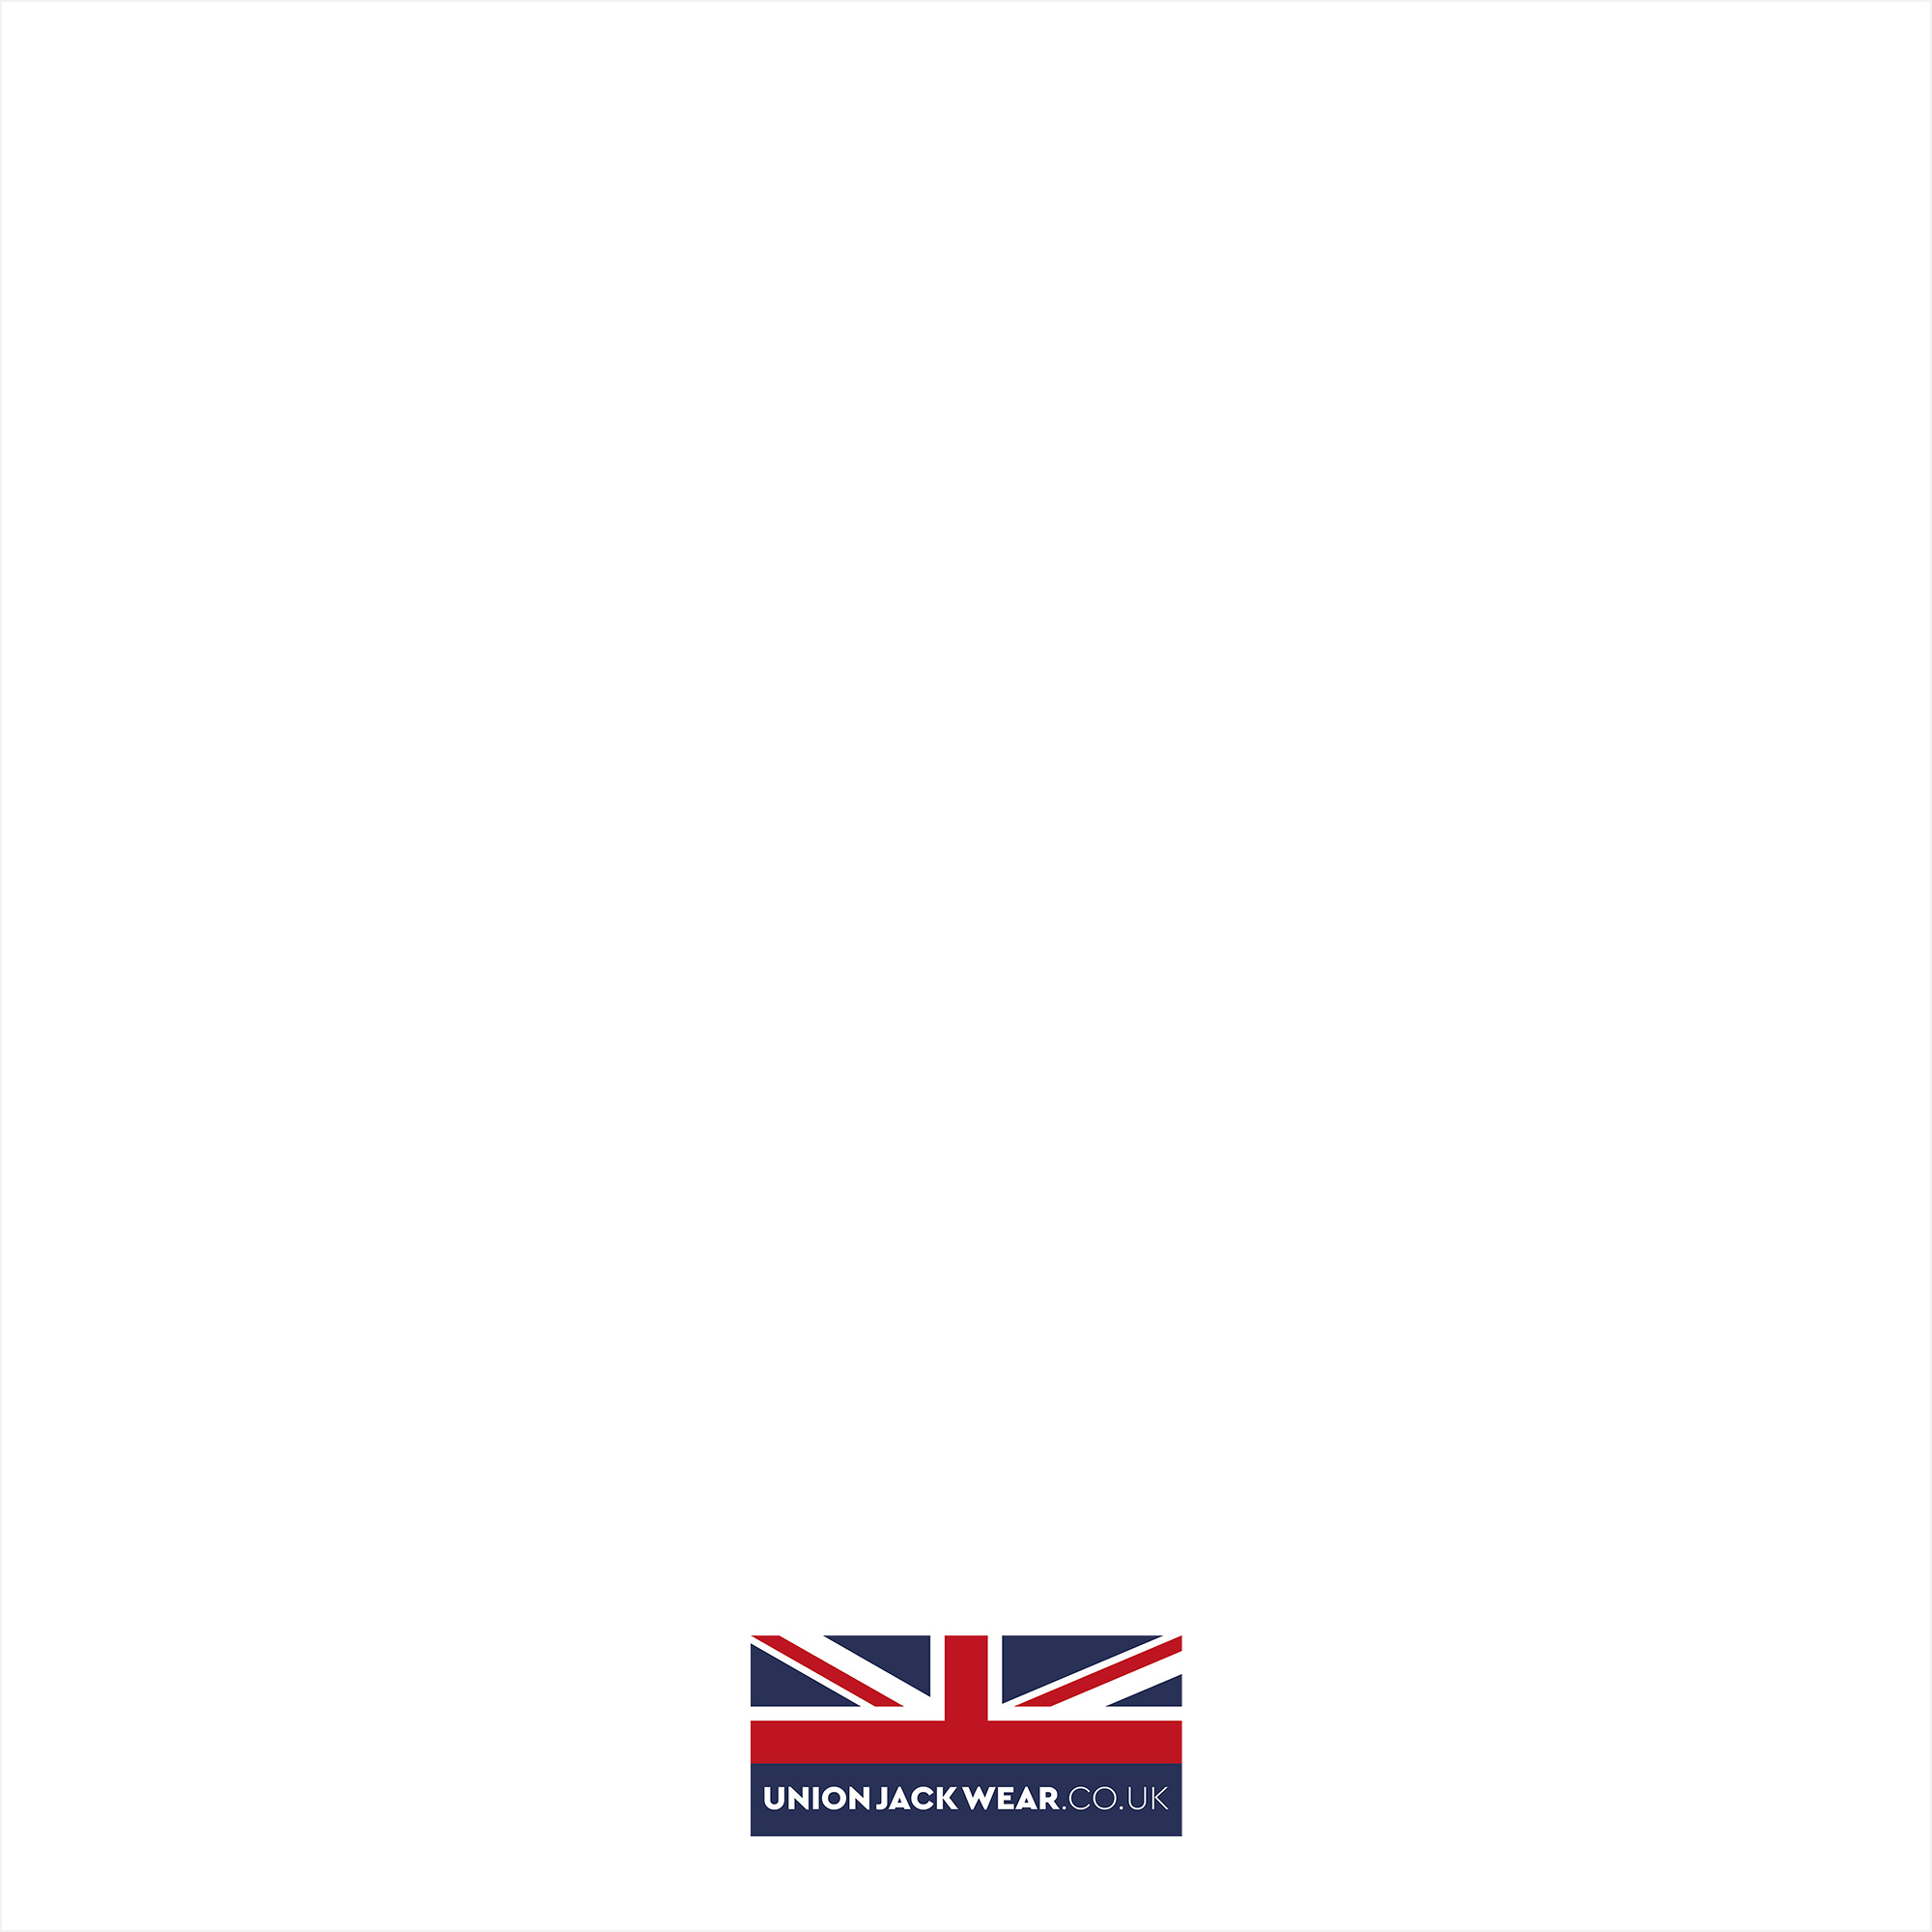 Union Jack Wear Union Jack Napkins - Pack of 20 - 3ply